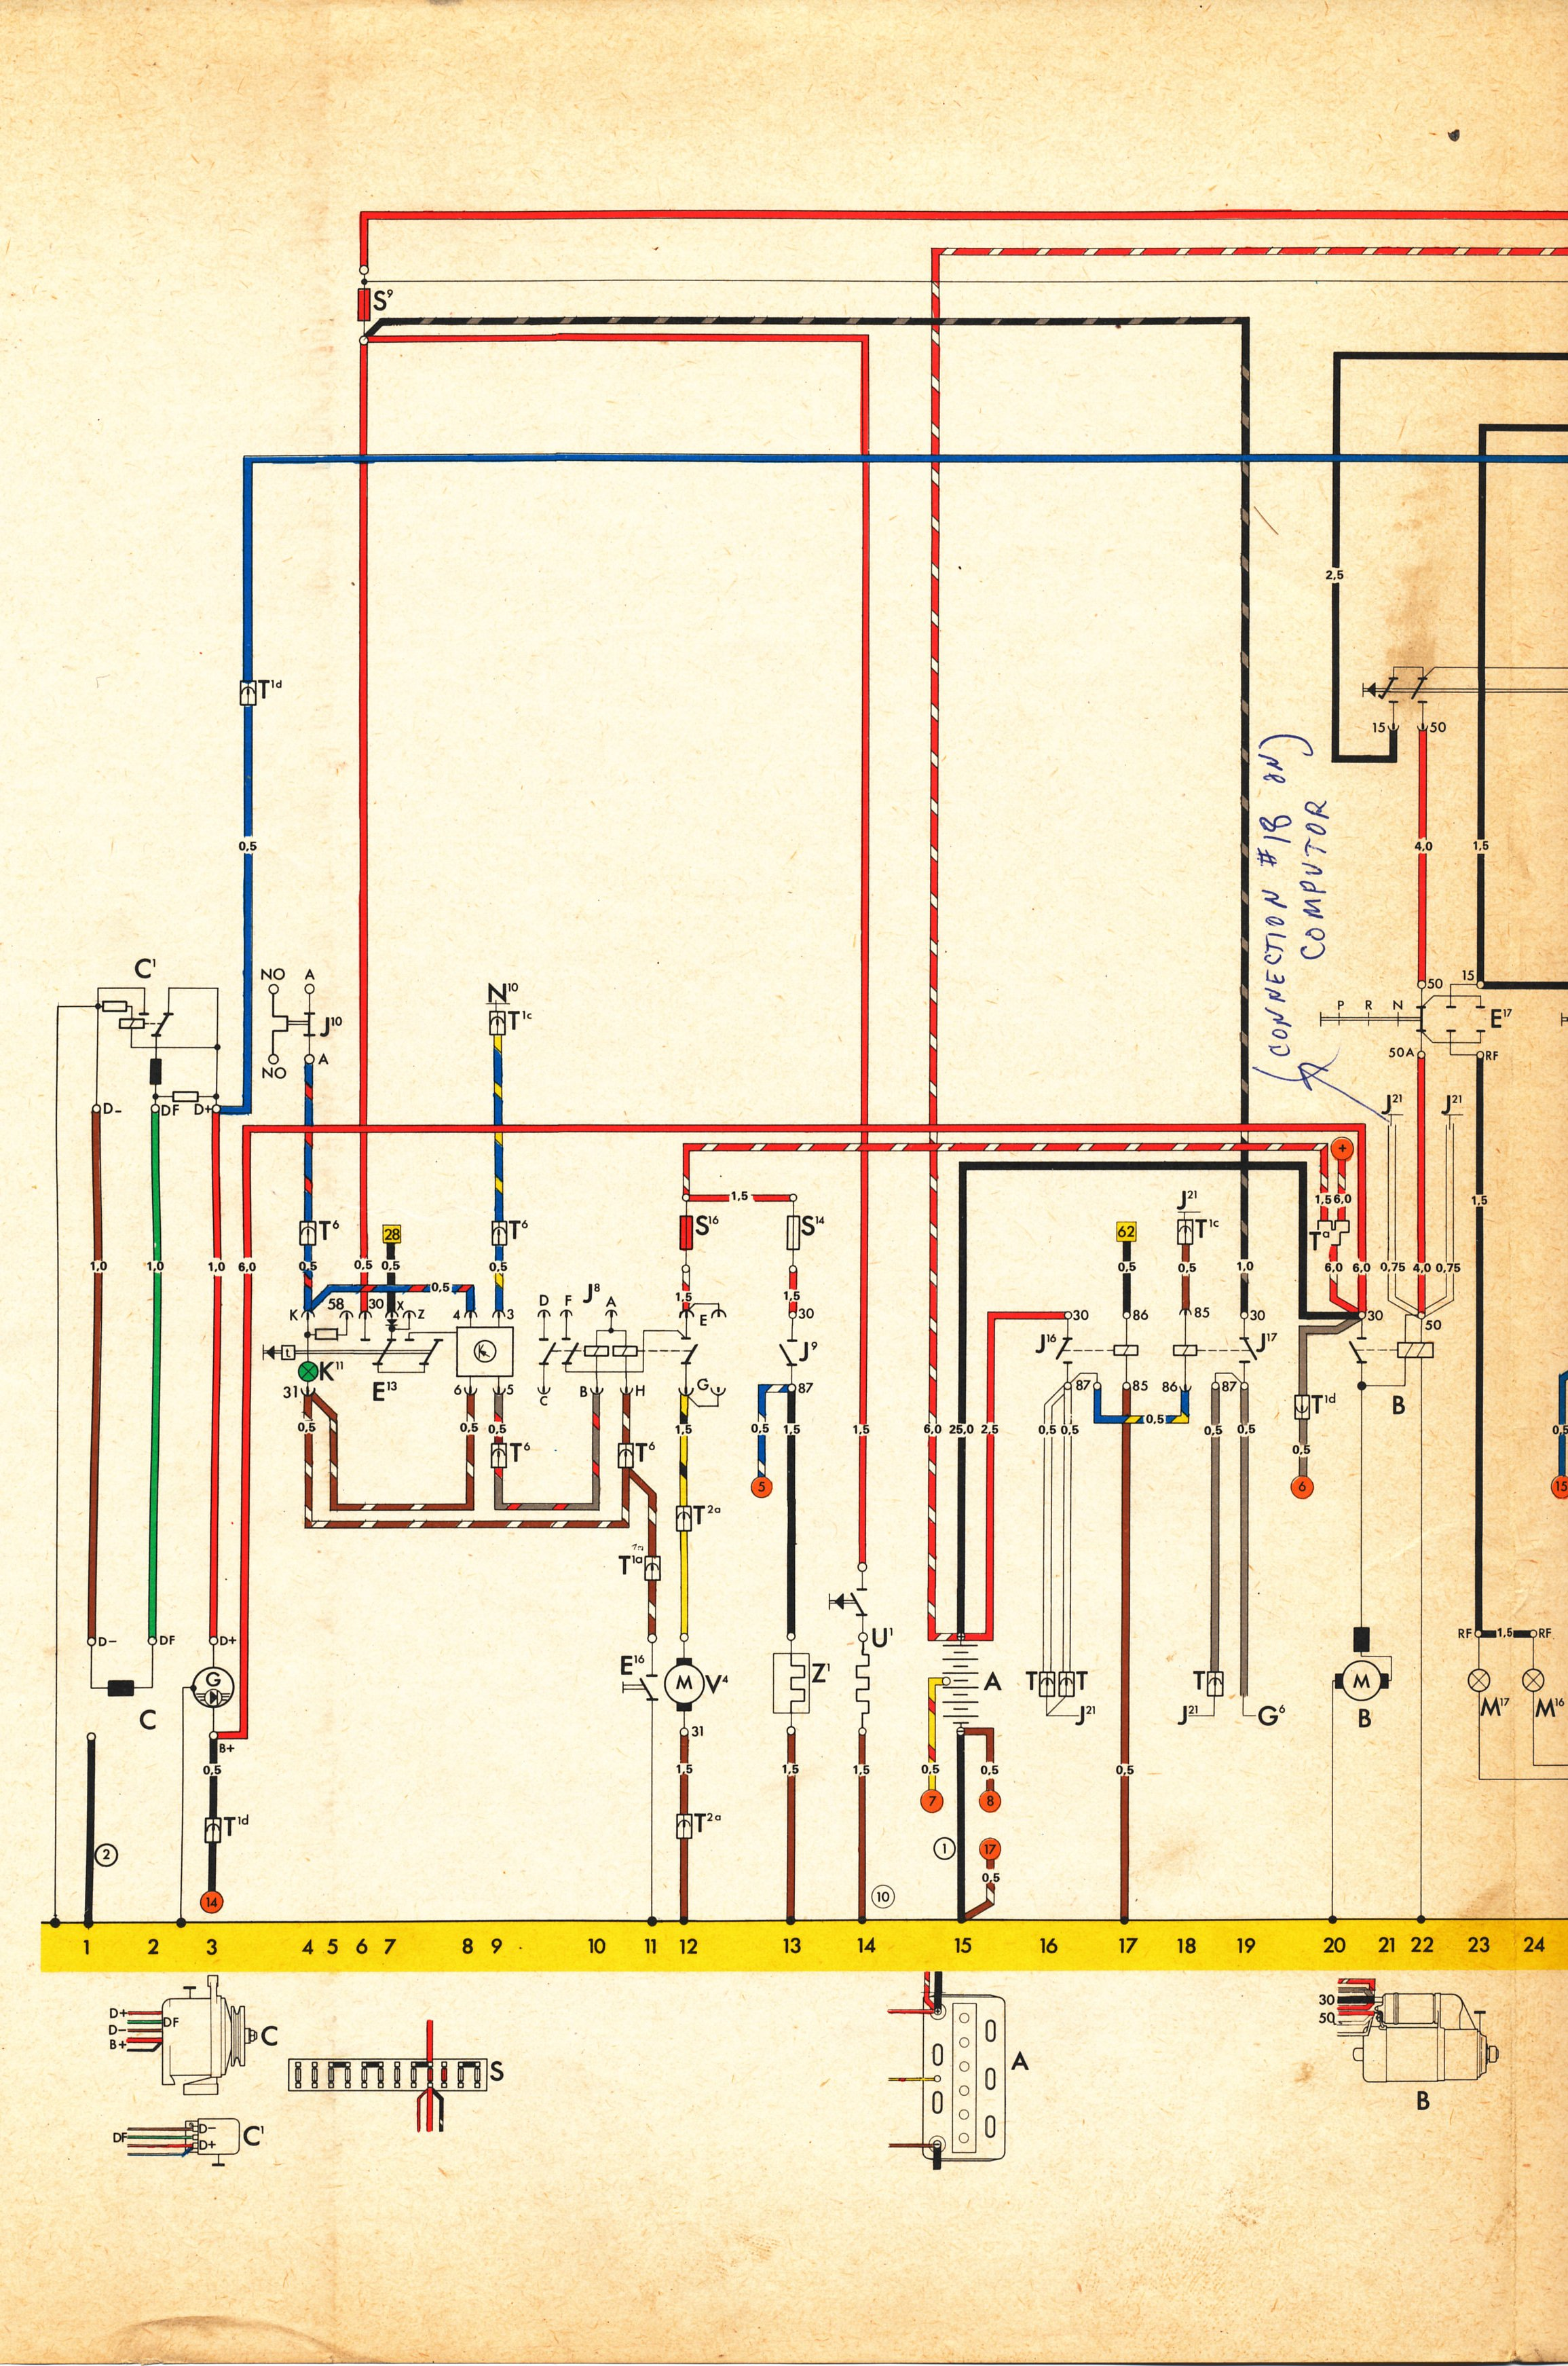 Type 4 Wiring Diagrams Vw 411 412 Fuse Box 1973 Current Flow